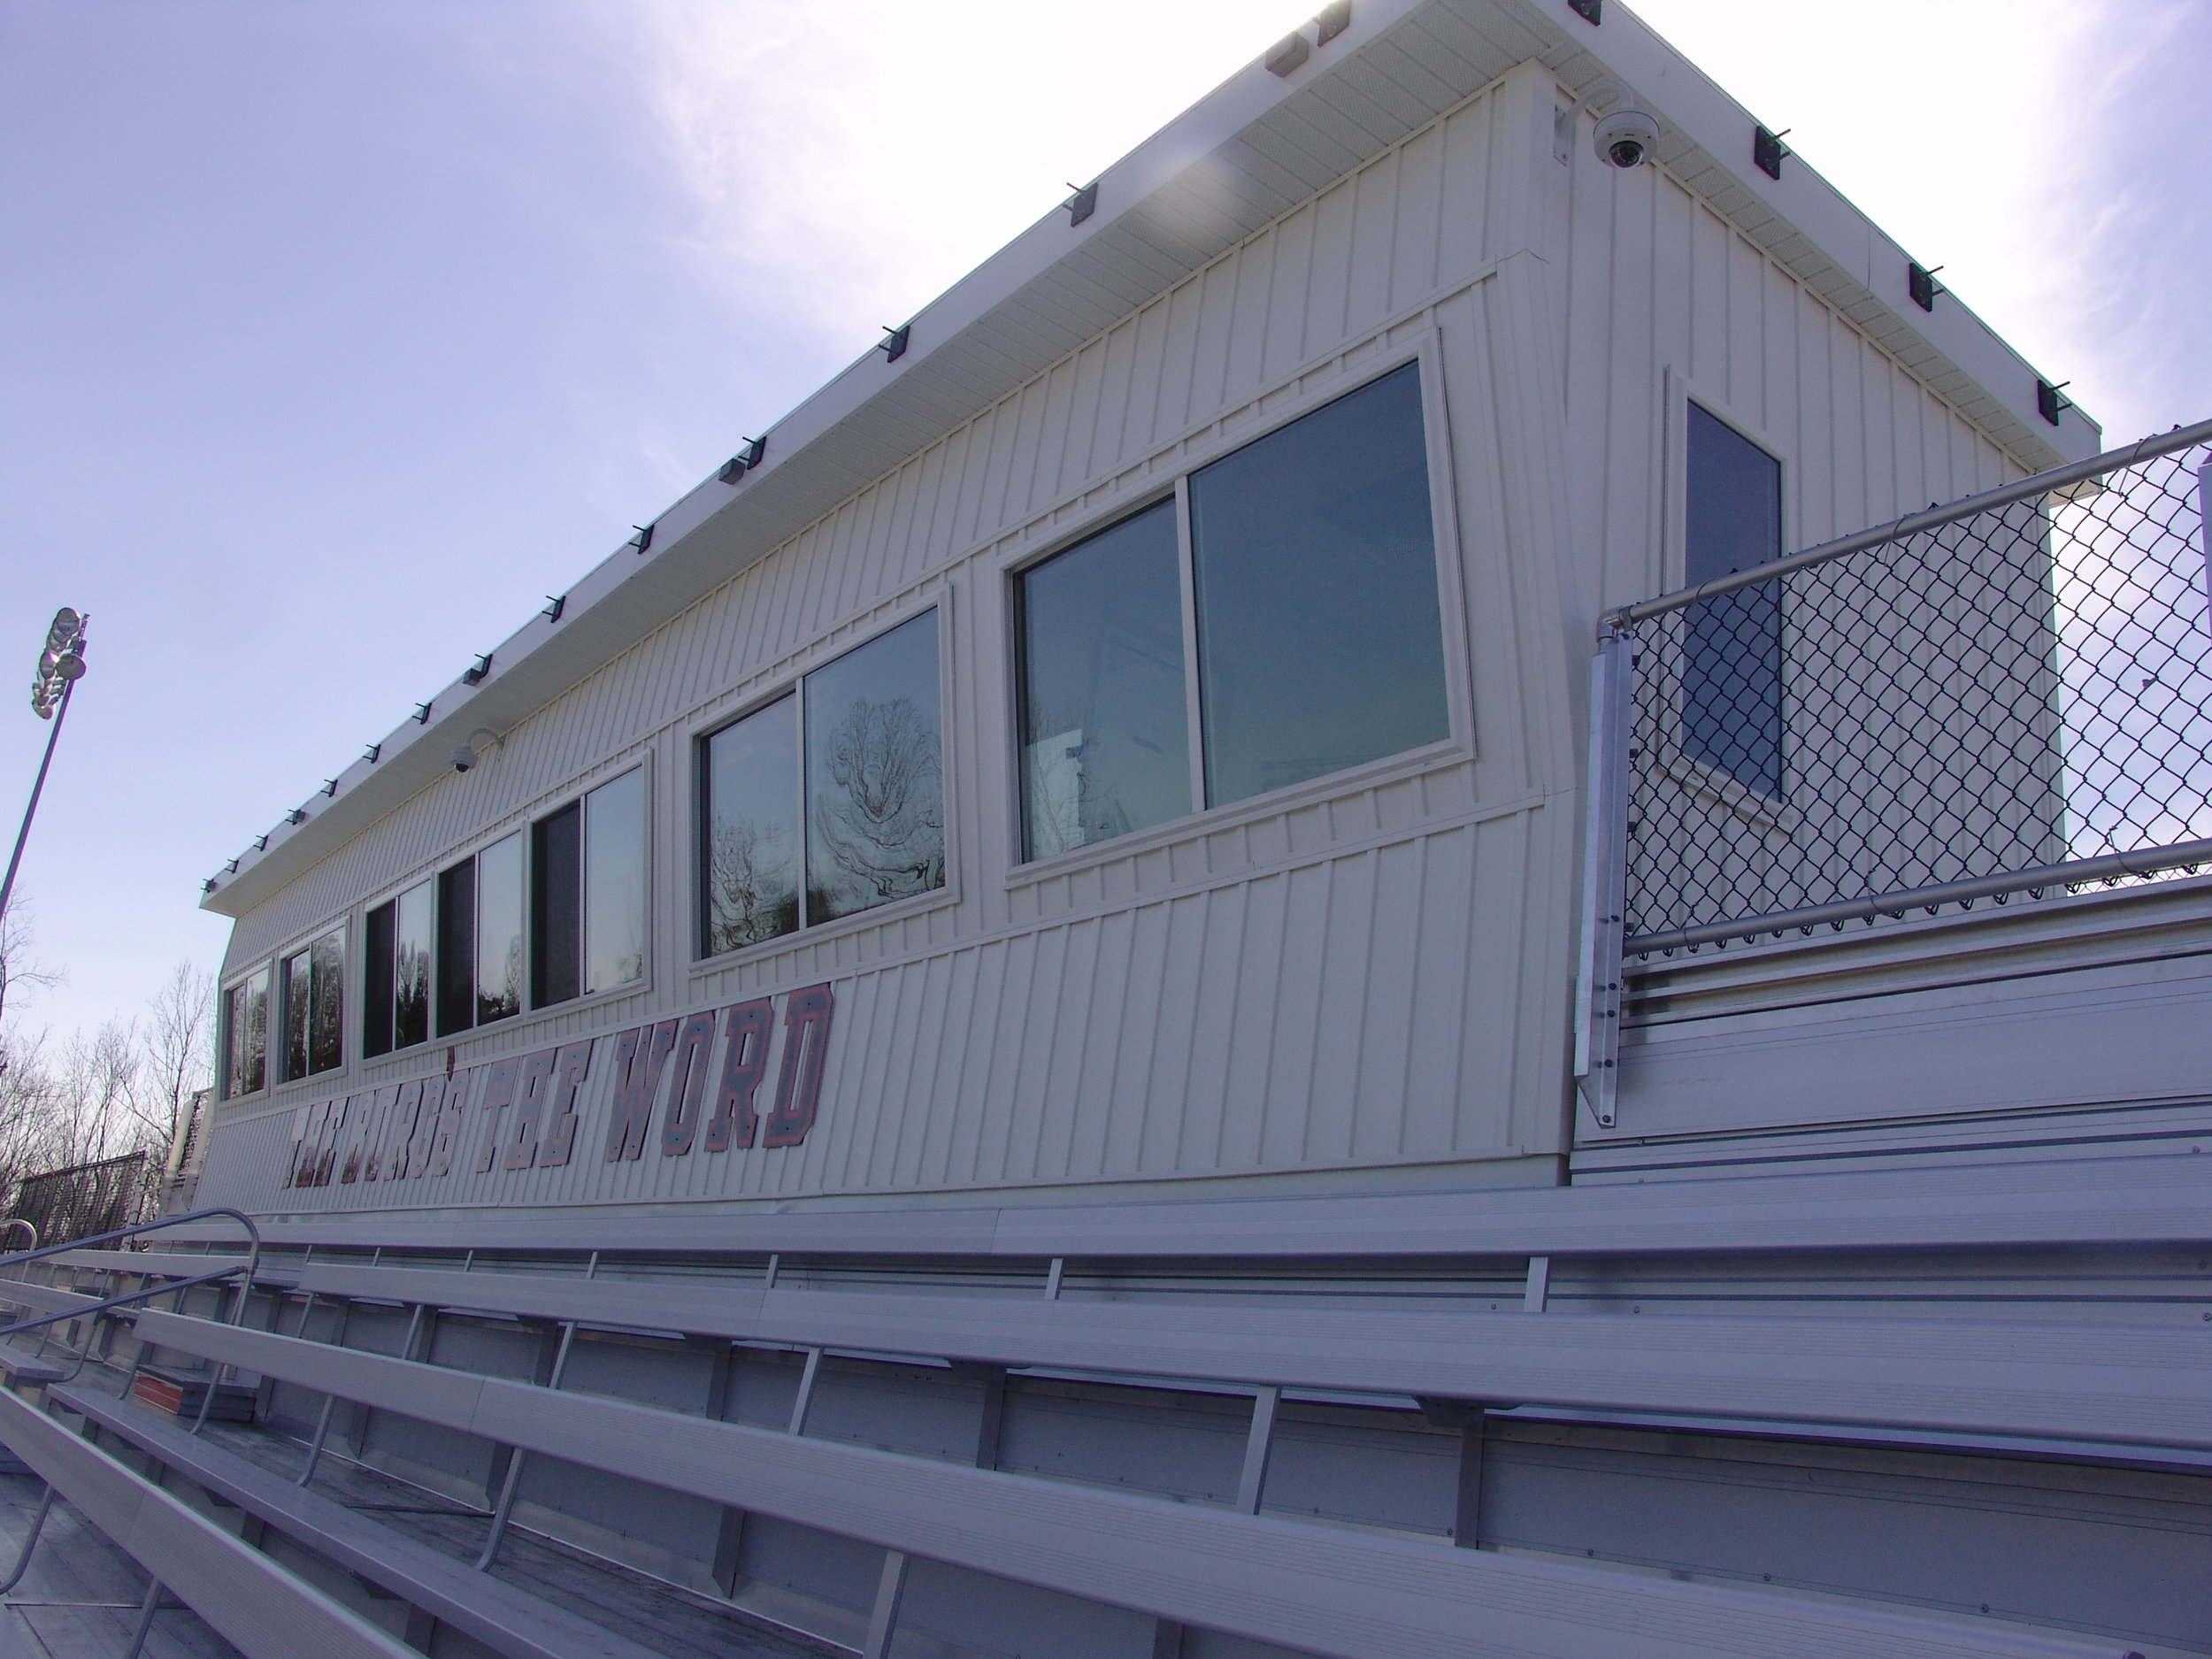 Feature: 6' Sloped Windows on Front of Press Box